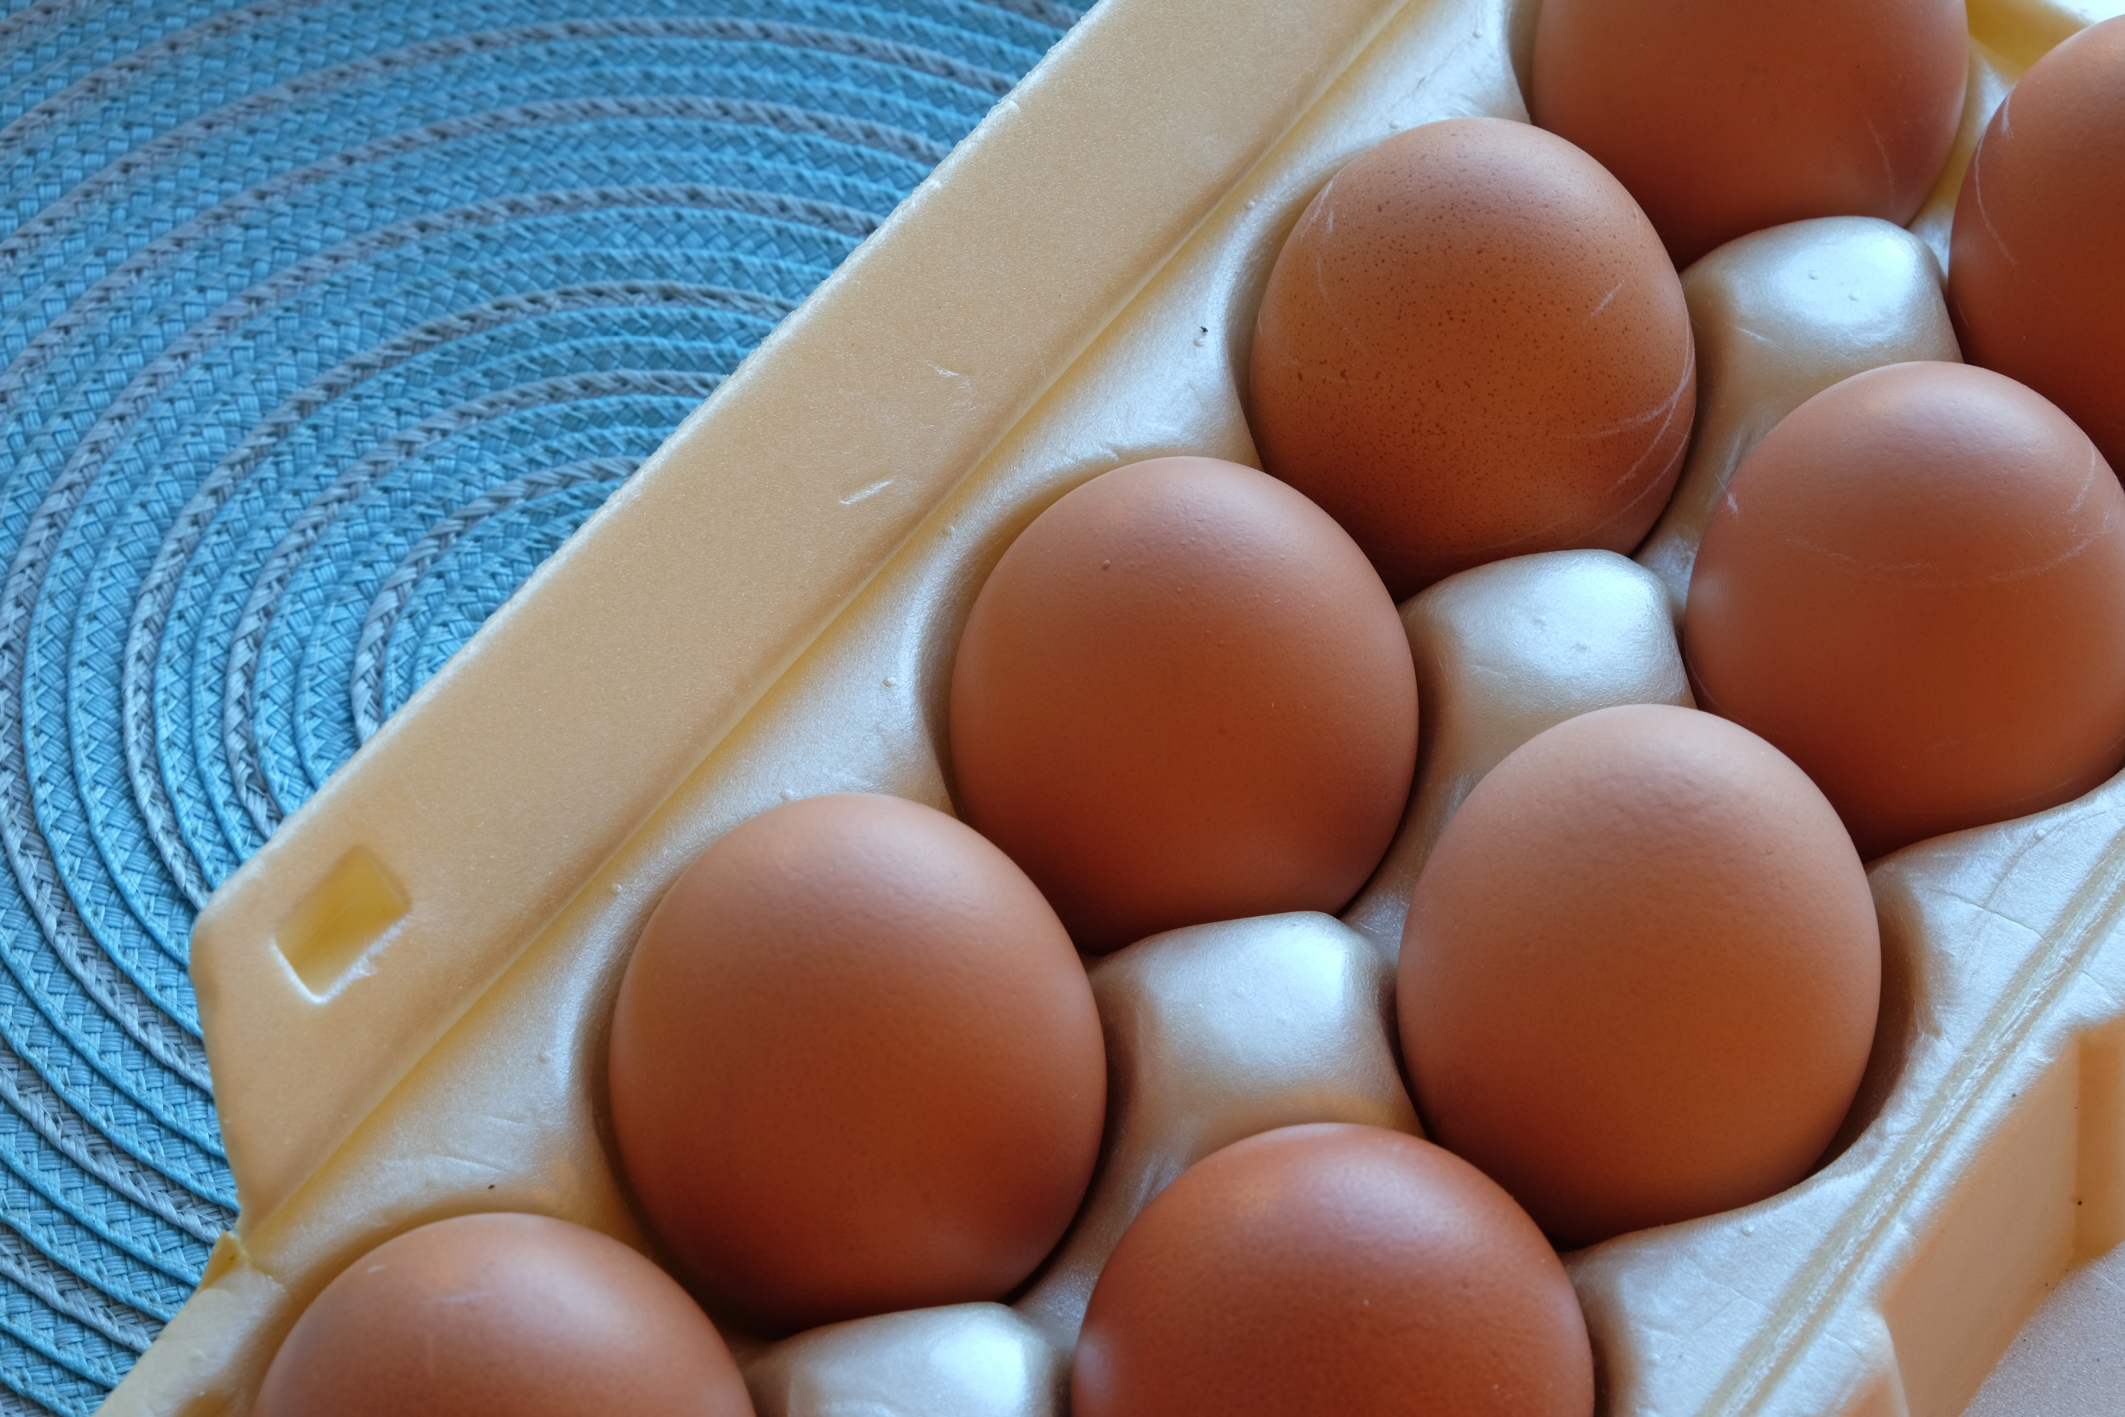 Signs and Symptoms of Egg Food Poisoning